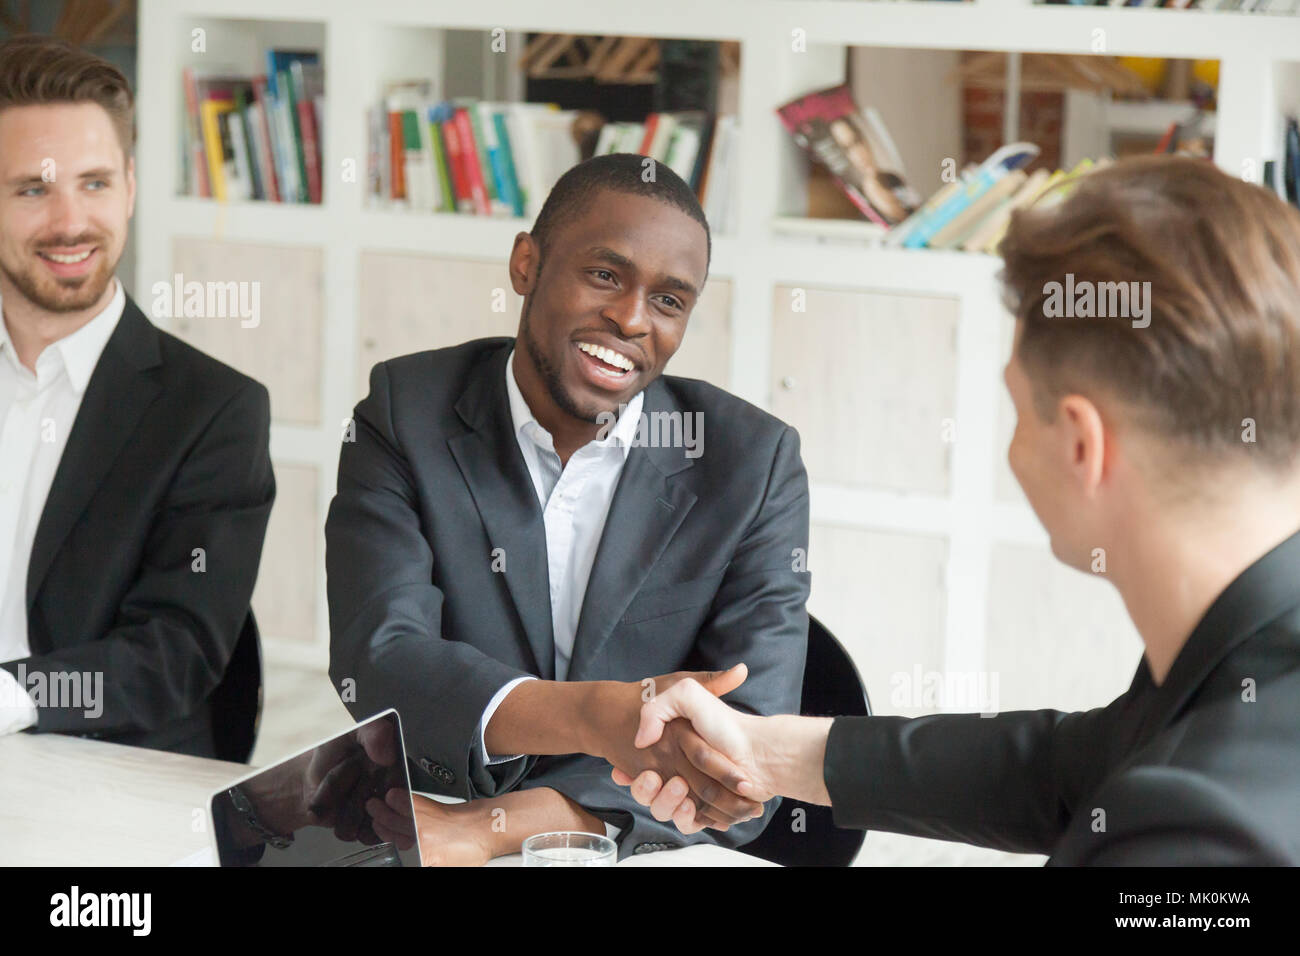 Team leader greeting black colleague with promotion - Stock Image